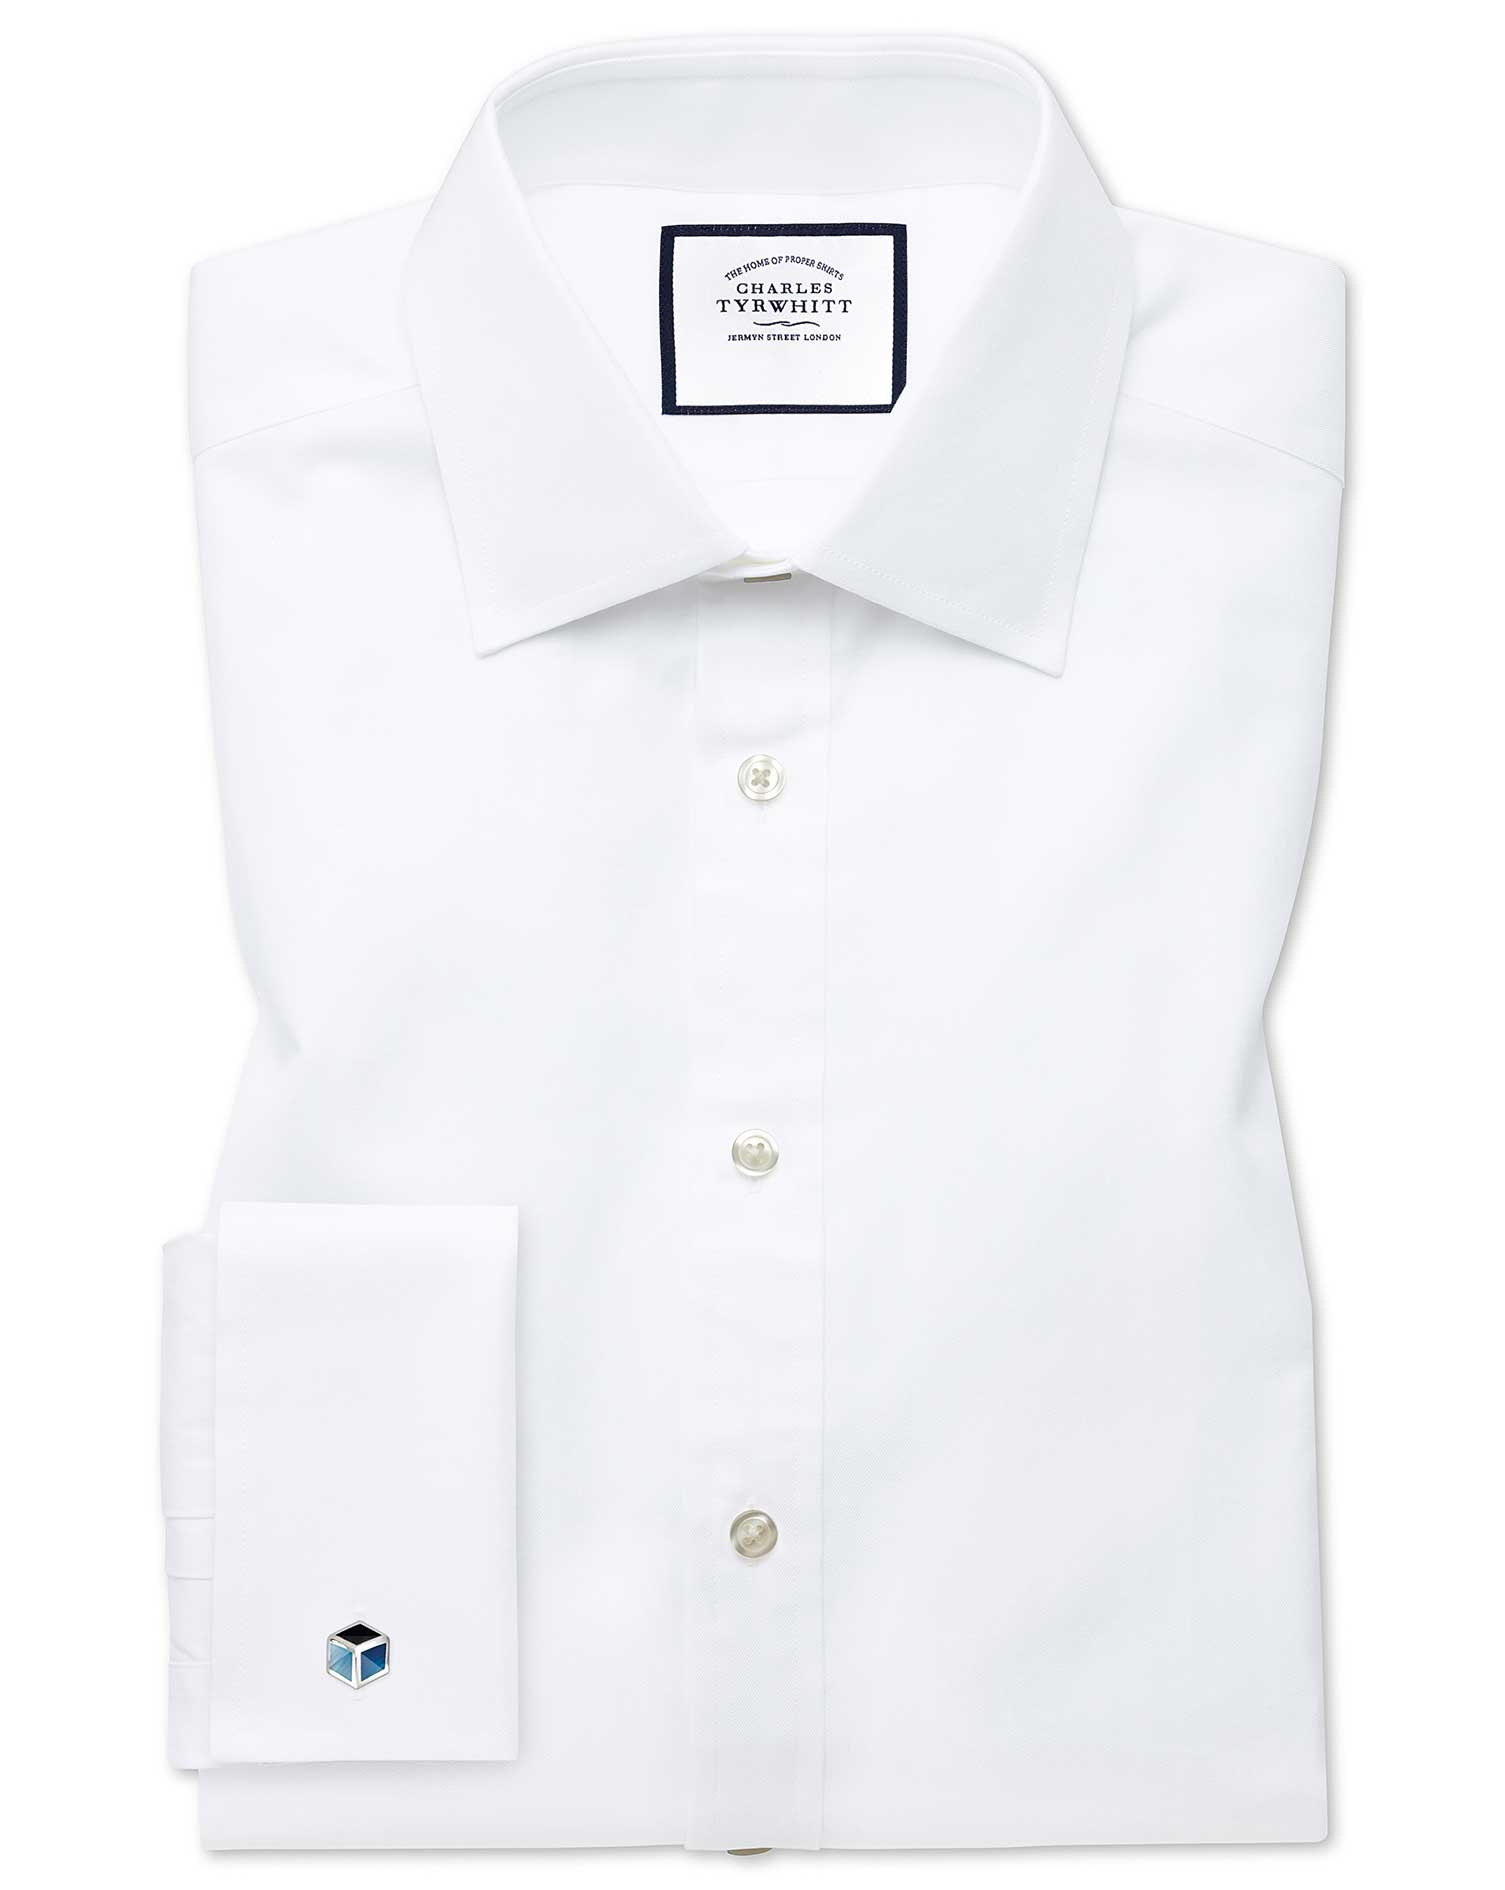 Classic Fit Fine Herringbone White Cotton Formal Shirt Single Cuff Size 16/38 by Charles Tyrwhitt